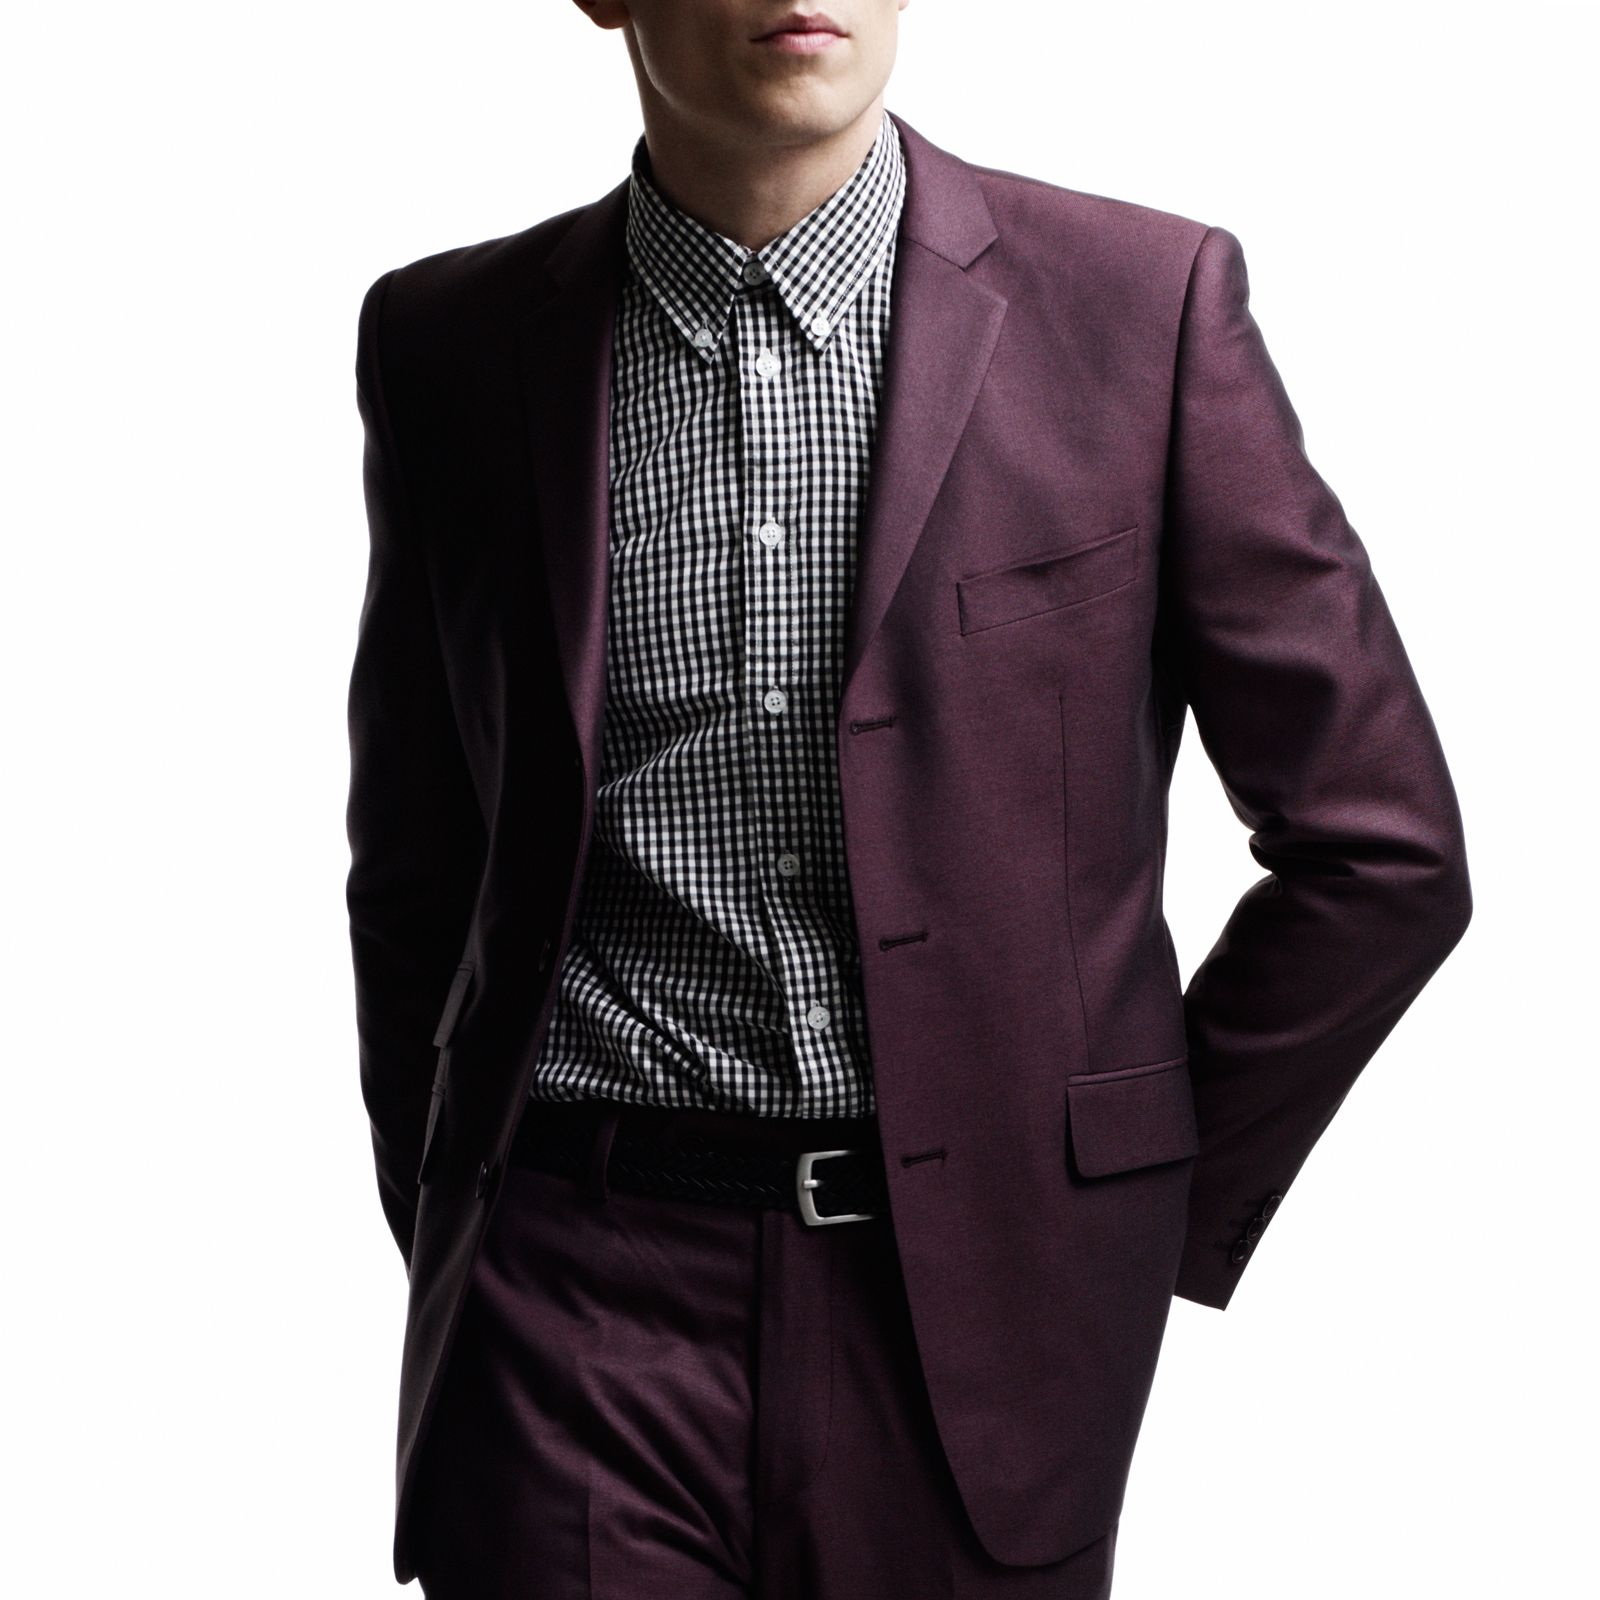 skinhead tonic suit | Urban tribes | Pinterest | Jackets, Men's ...